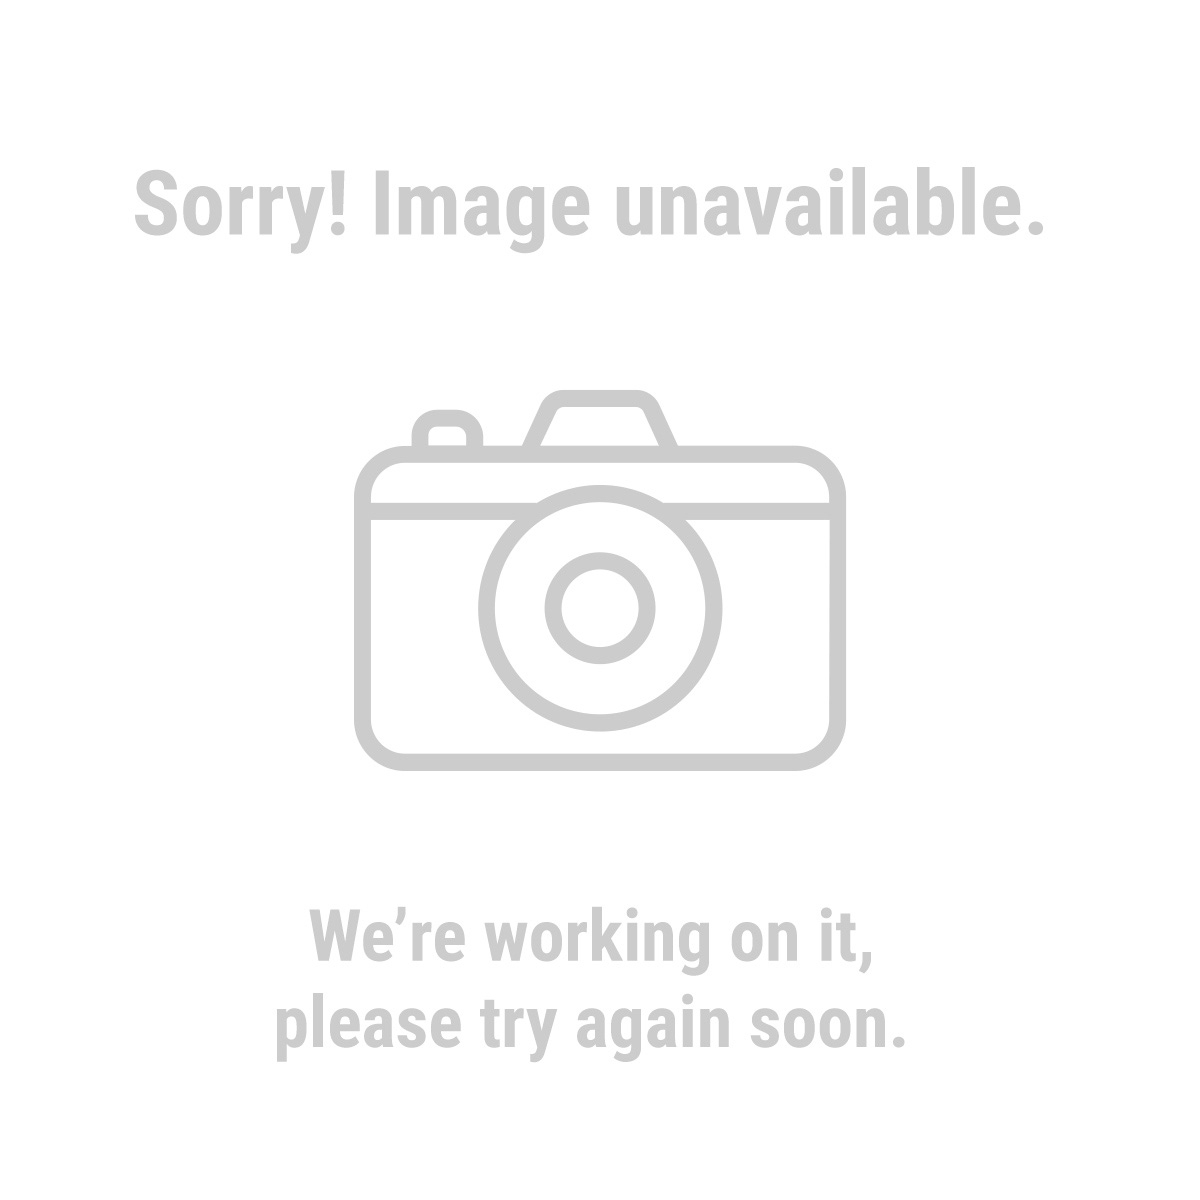 One Stop Gardens 9646 32-1/2'' L x 10'' W x 13-1/4'' H Collapsible Medium Animal Trap